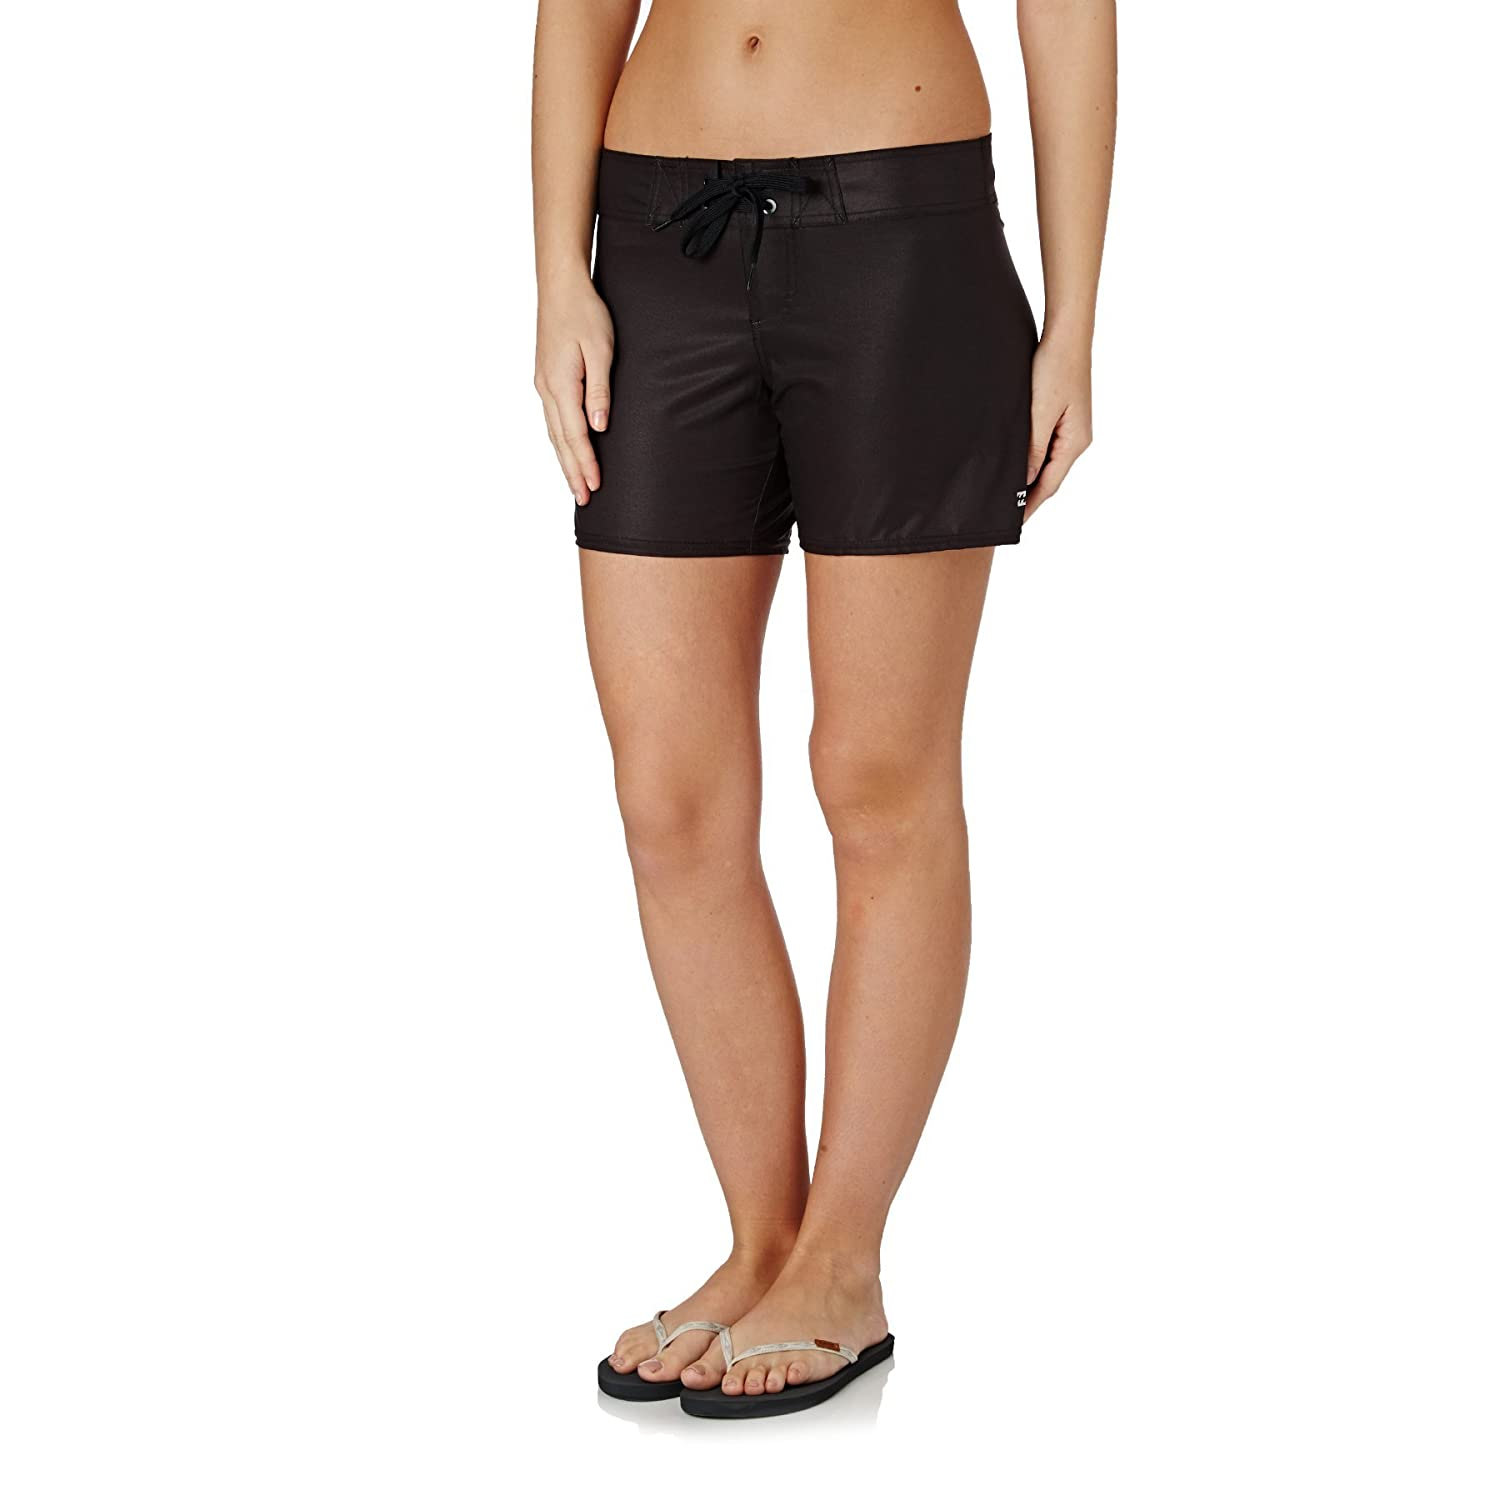 2016 Billabong Ladies Sol Searcher 5 Board Shorts in BLACK SANDS W3BS05